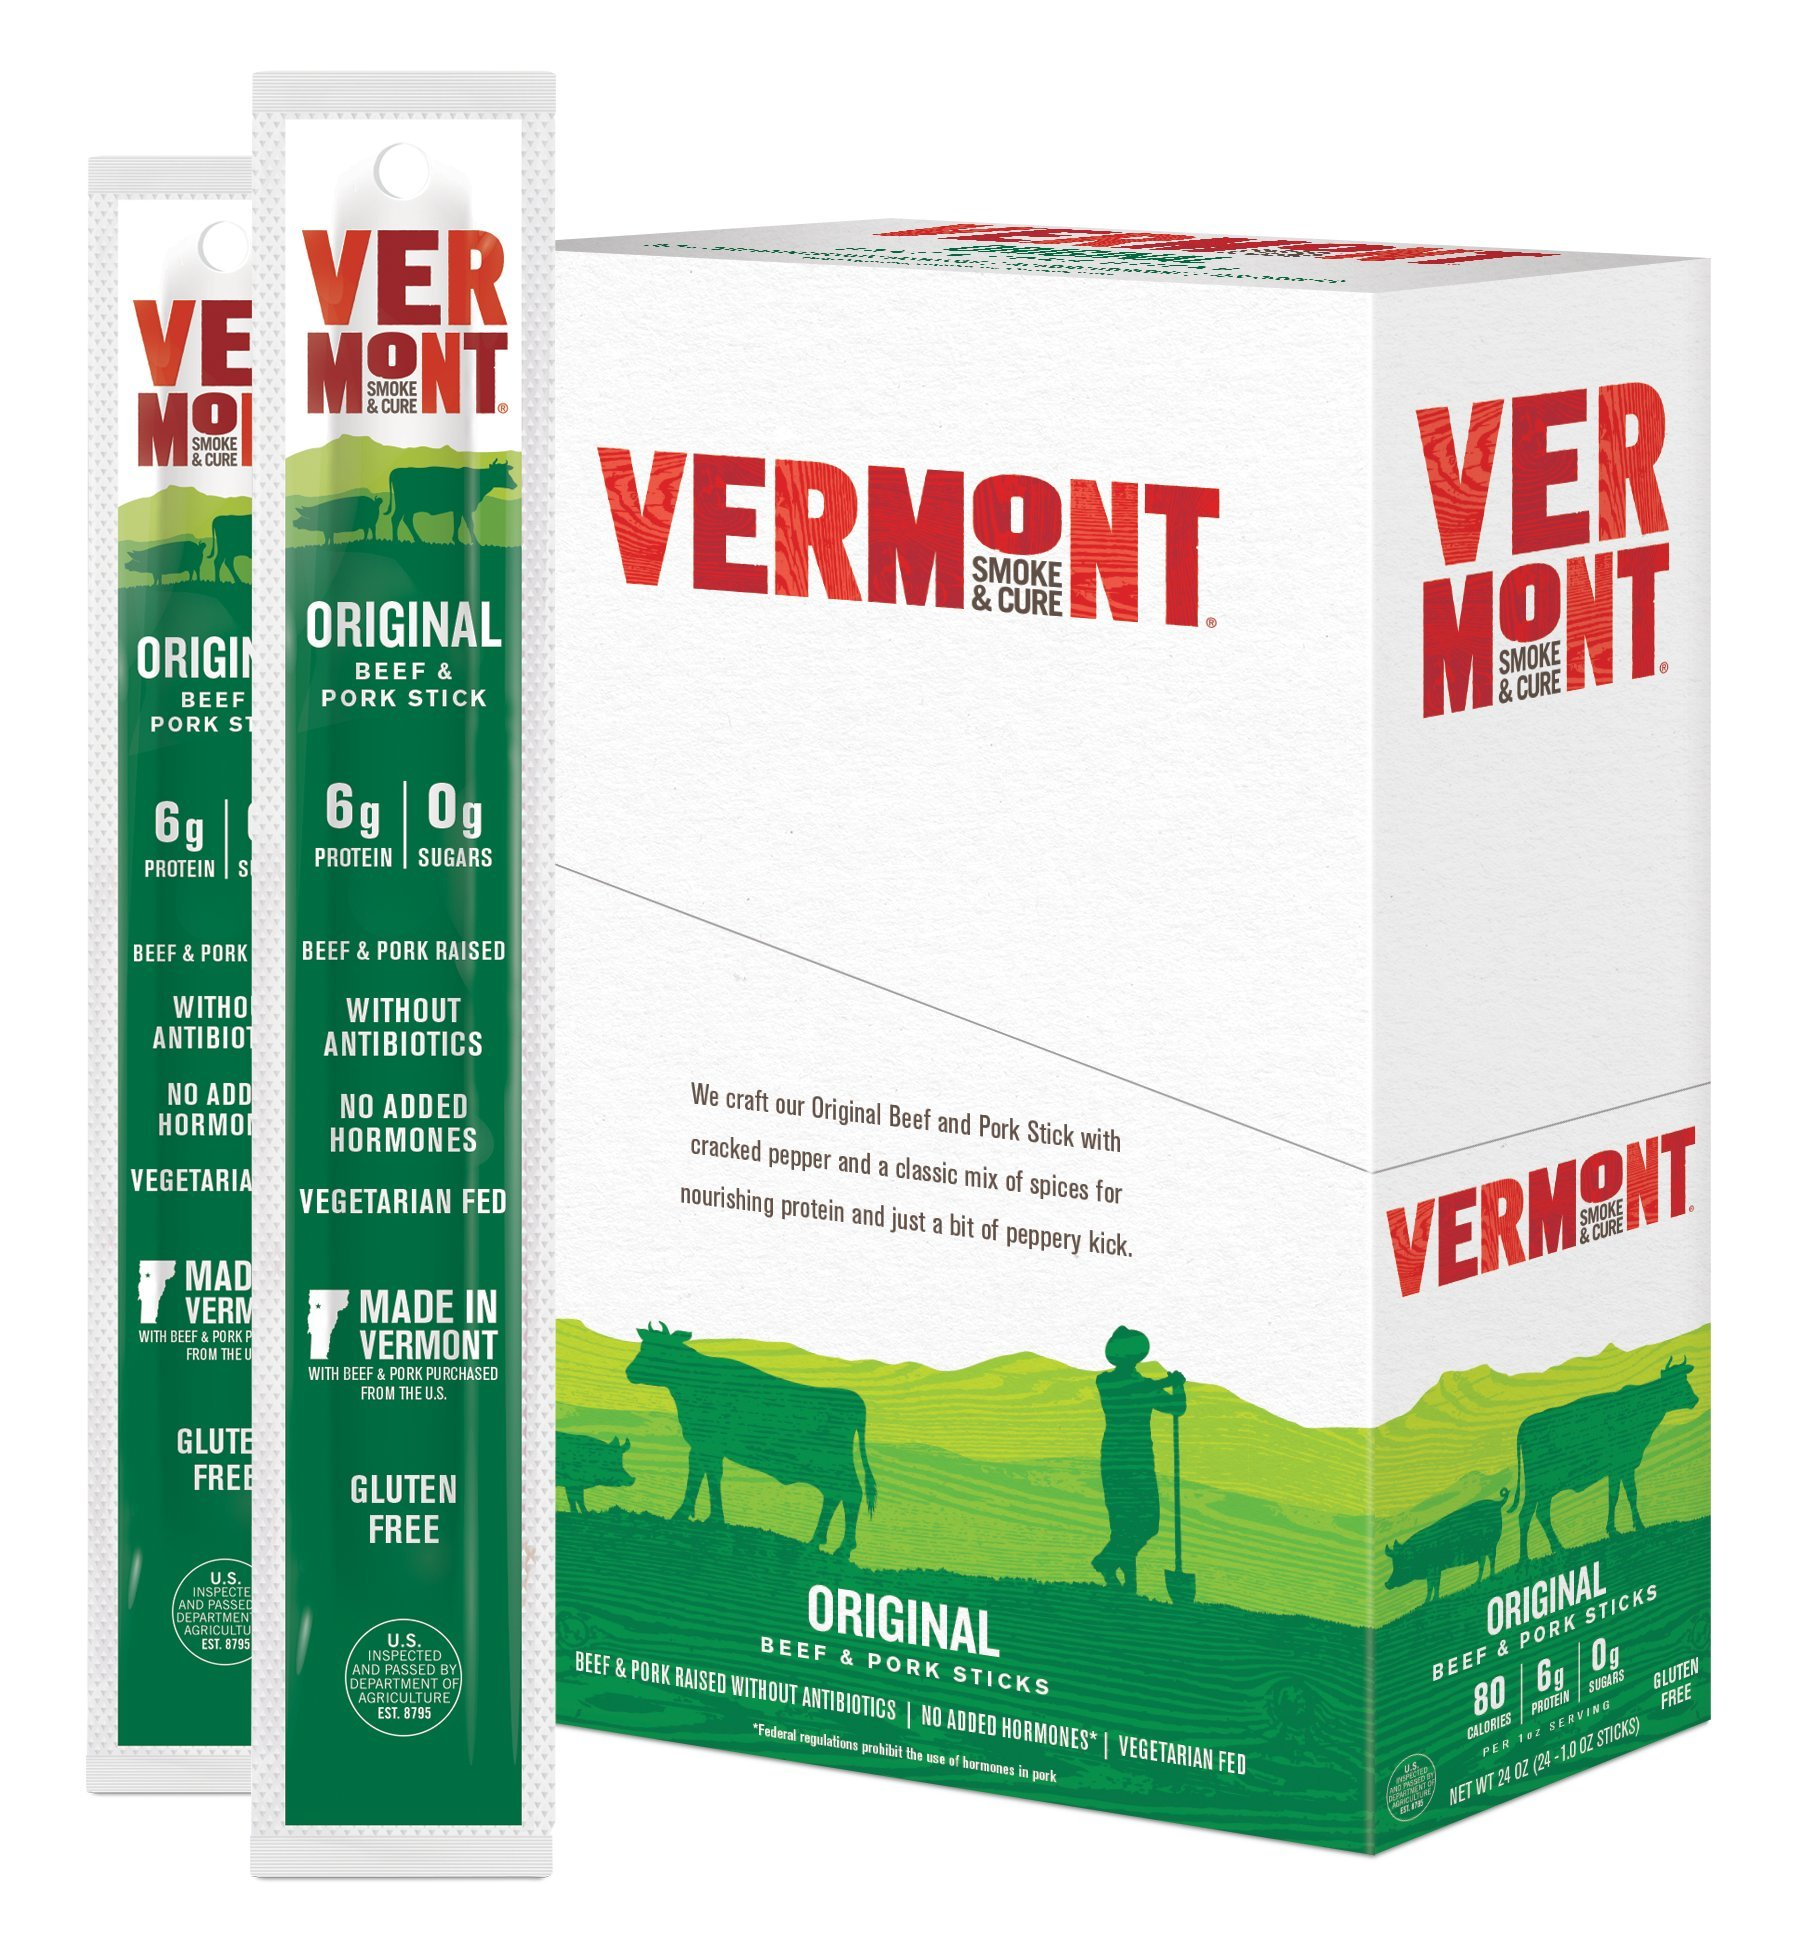 Vermont Smoke & Cure Meat Sticks- Antibiotic Free Beef & Pork -Gluten-Free Snack - Paleo and Keto Friendly - Cracked Pepper - 1oz Stick - 48 Count by Vermont Smoke and Cure (Image #2)